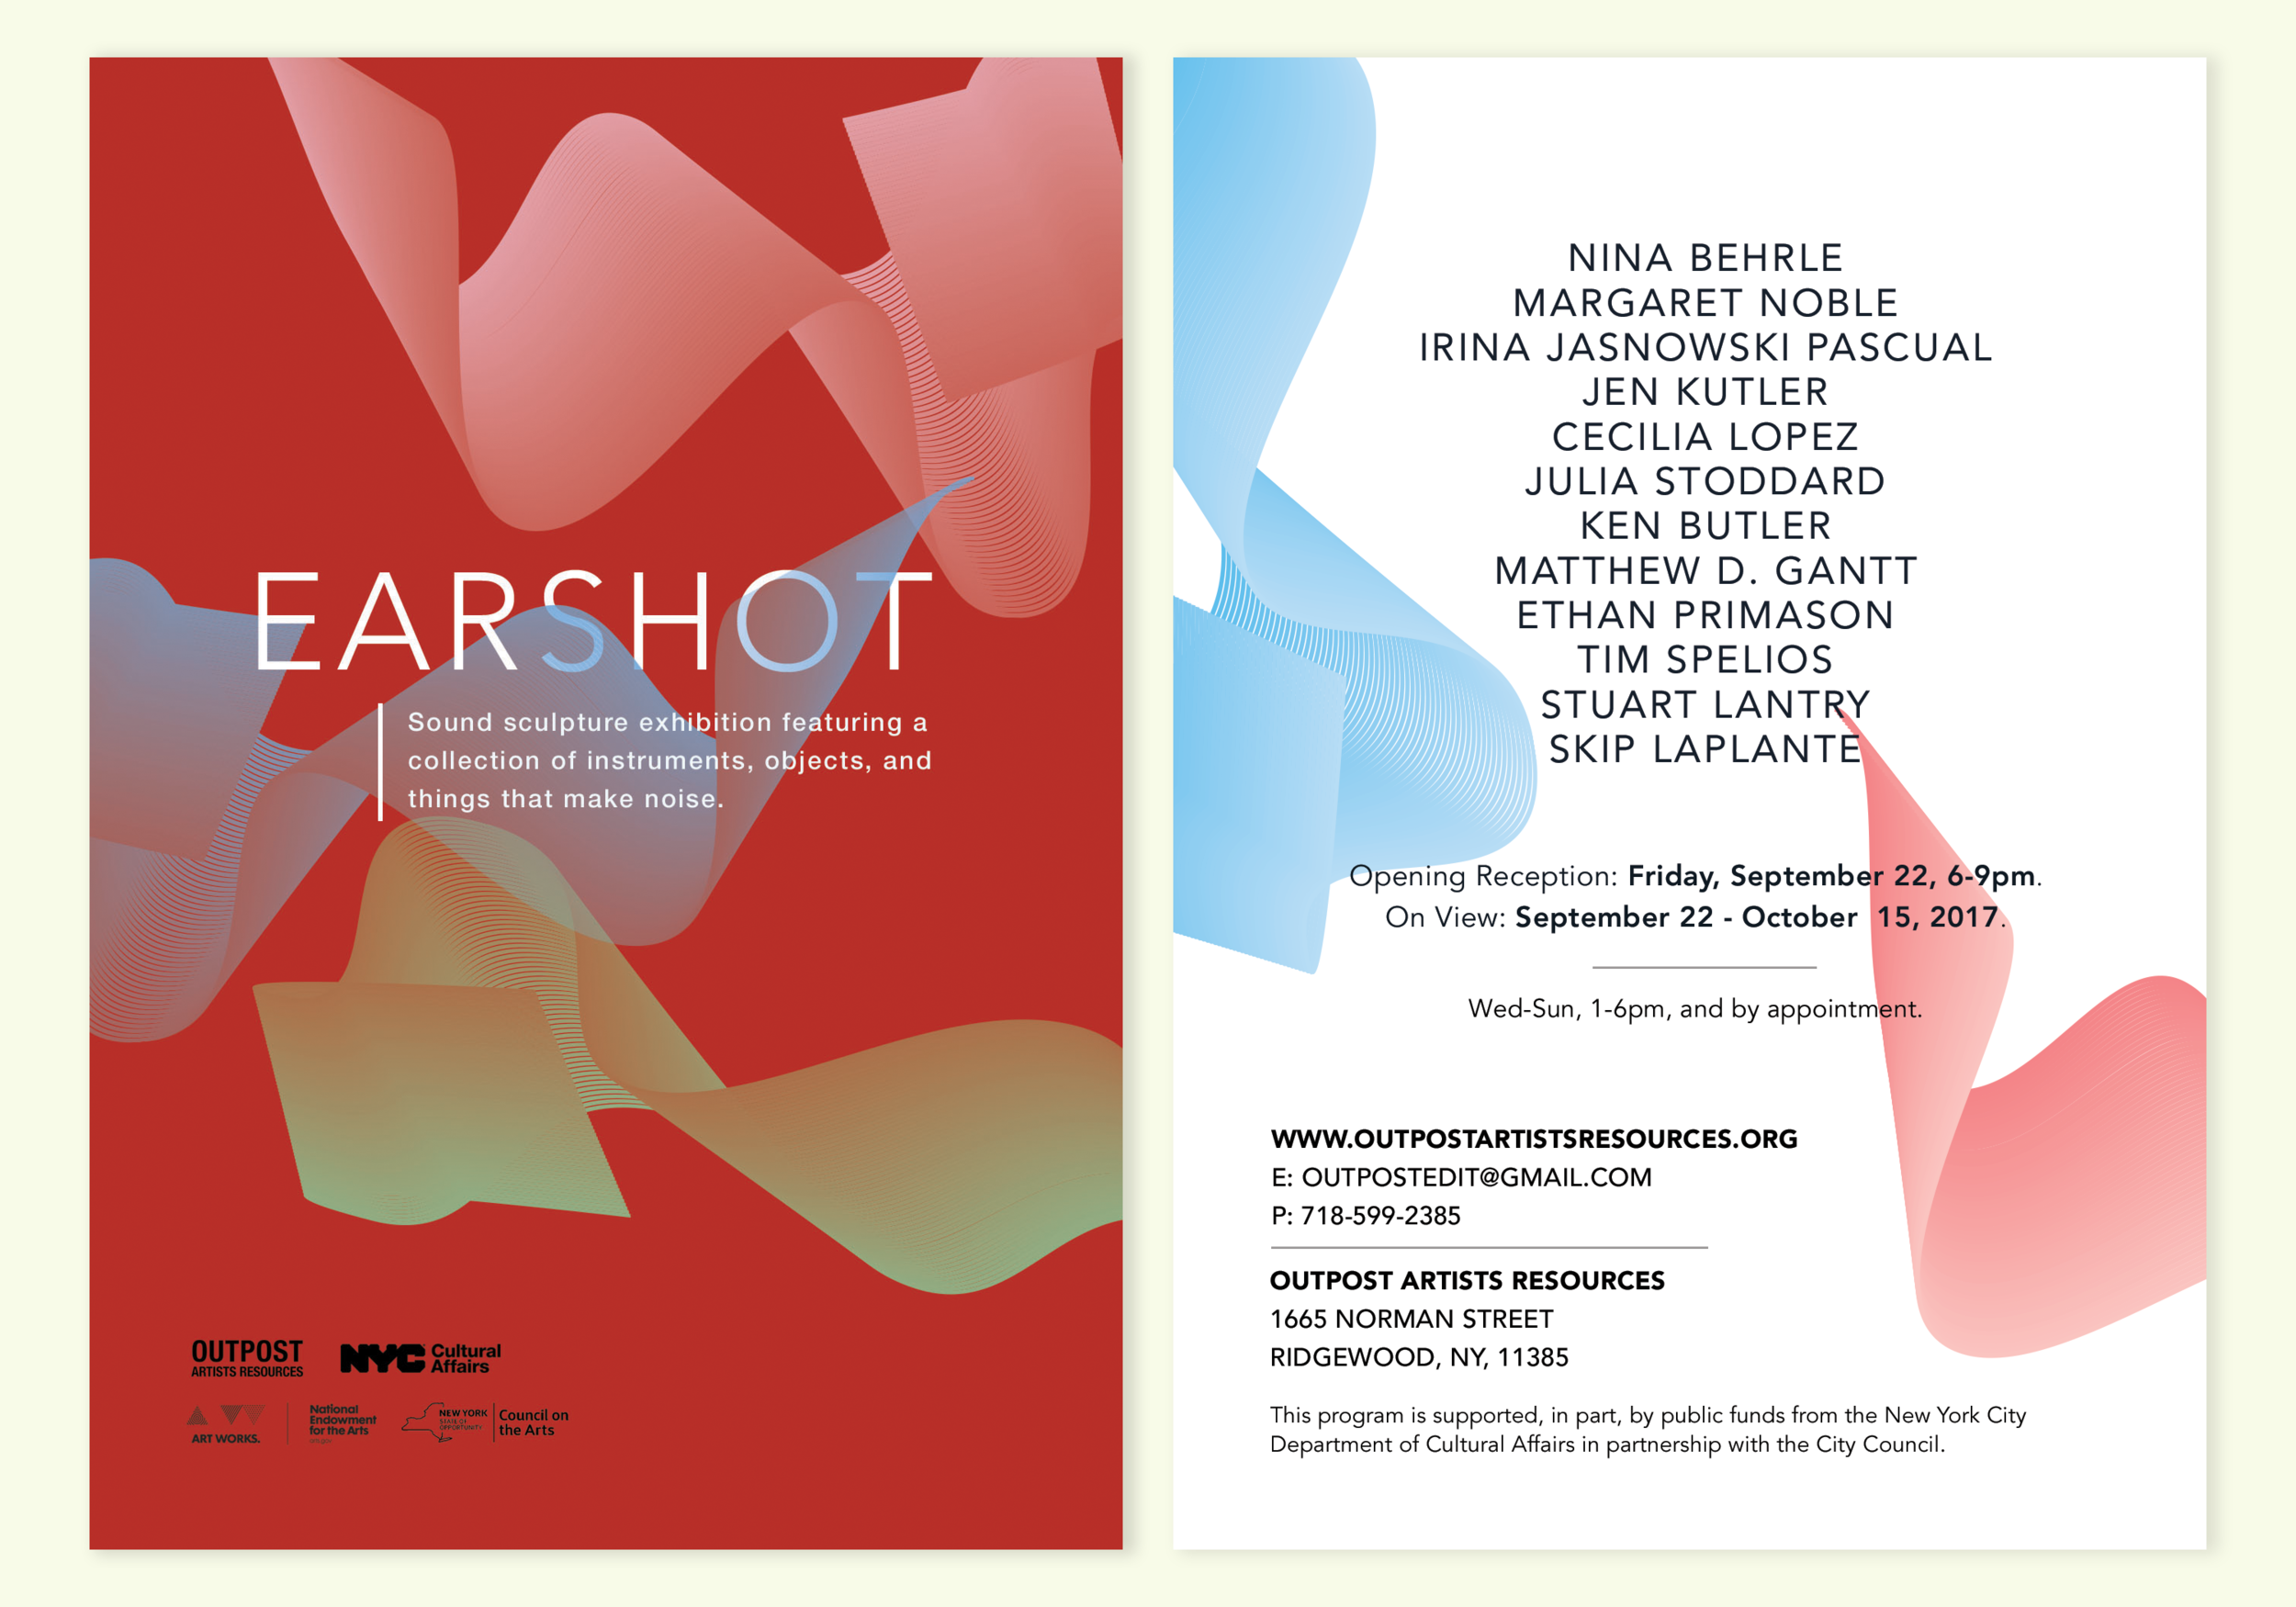 Printed Event Postcard for Outpost Artist Resources, 2017.